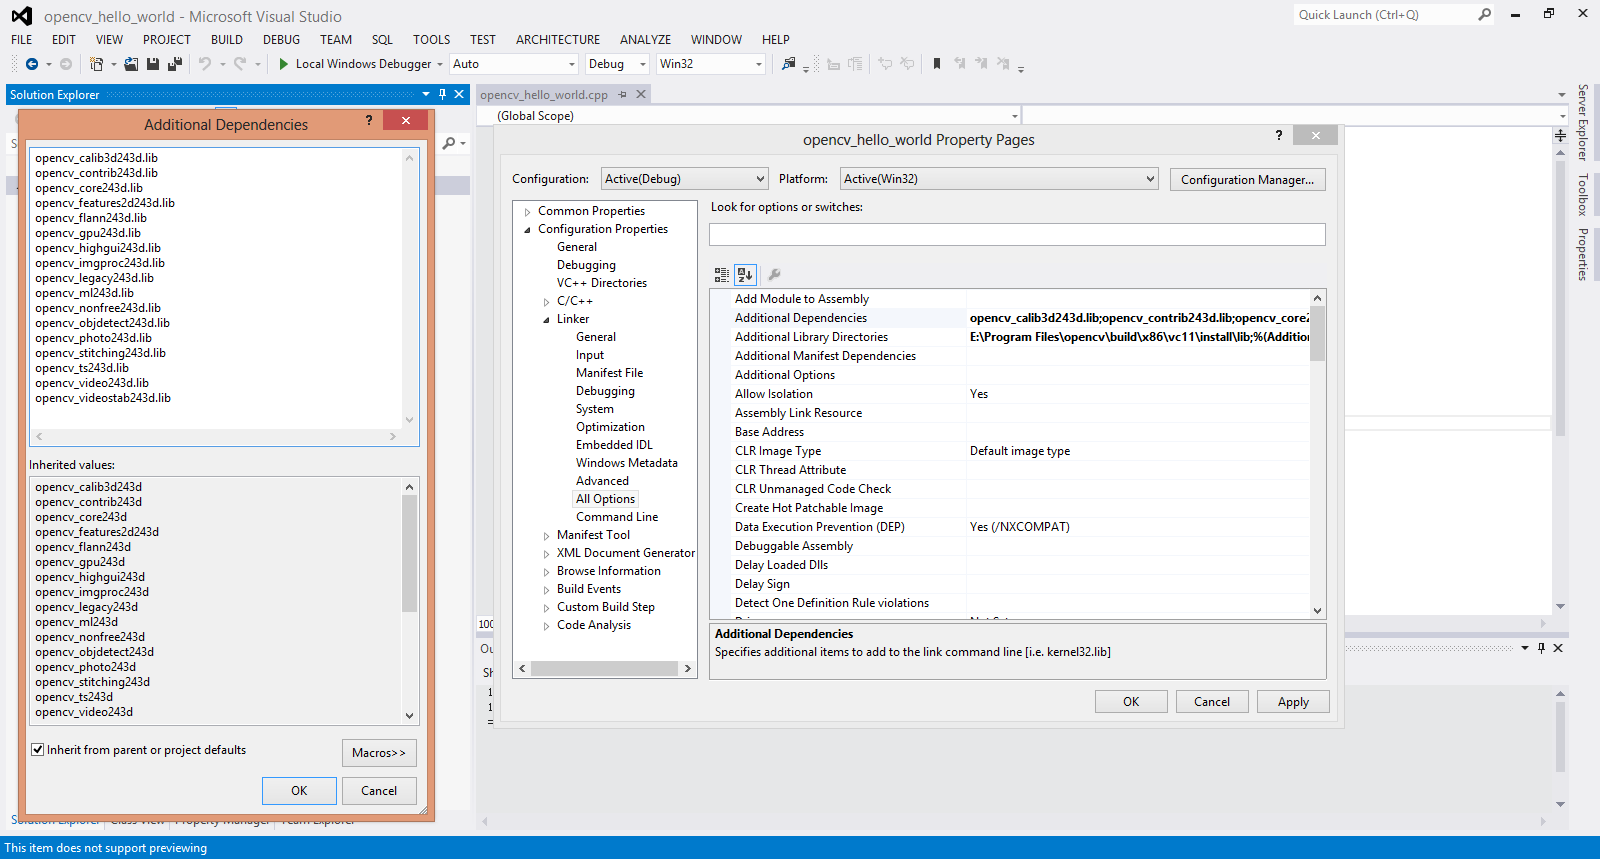 How to compile opencv 2 4 3 x86 and x64 using Visual Studio